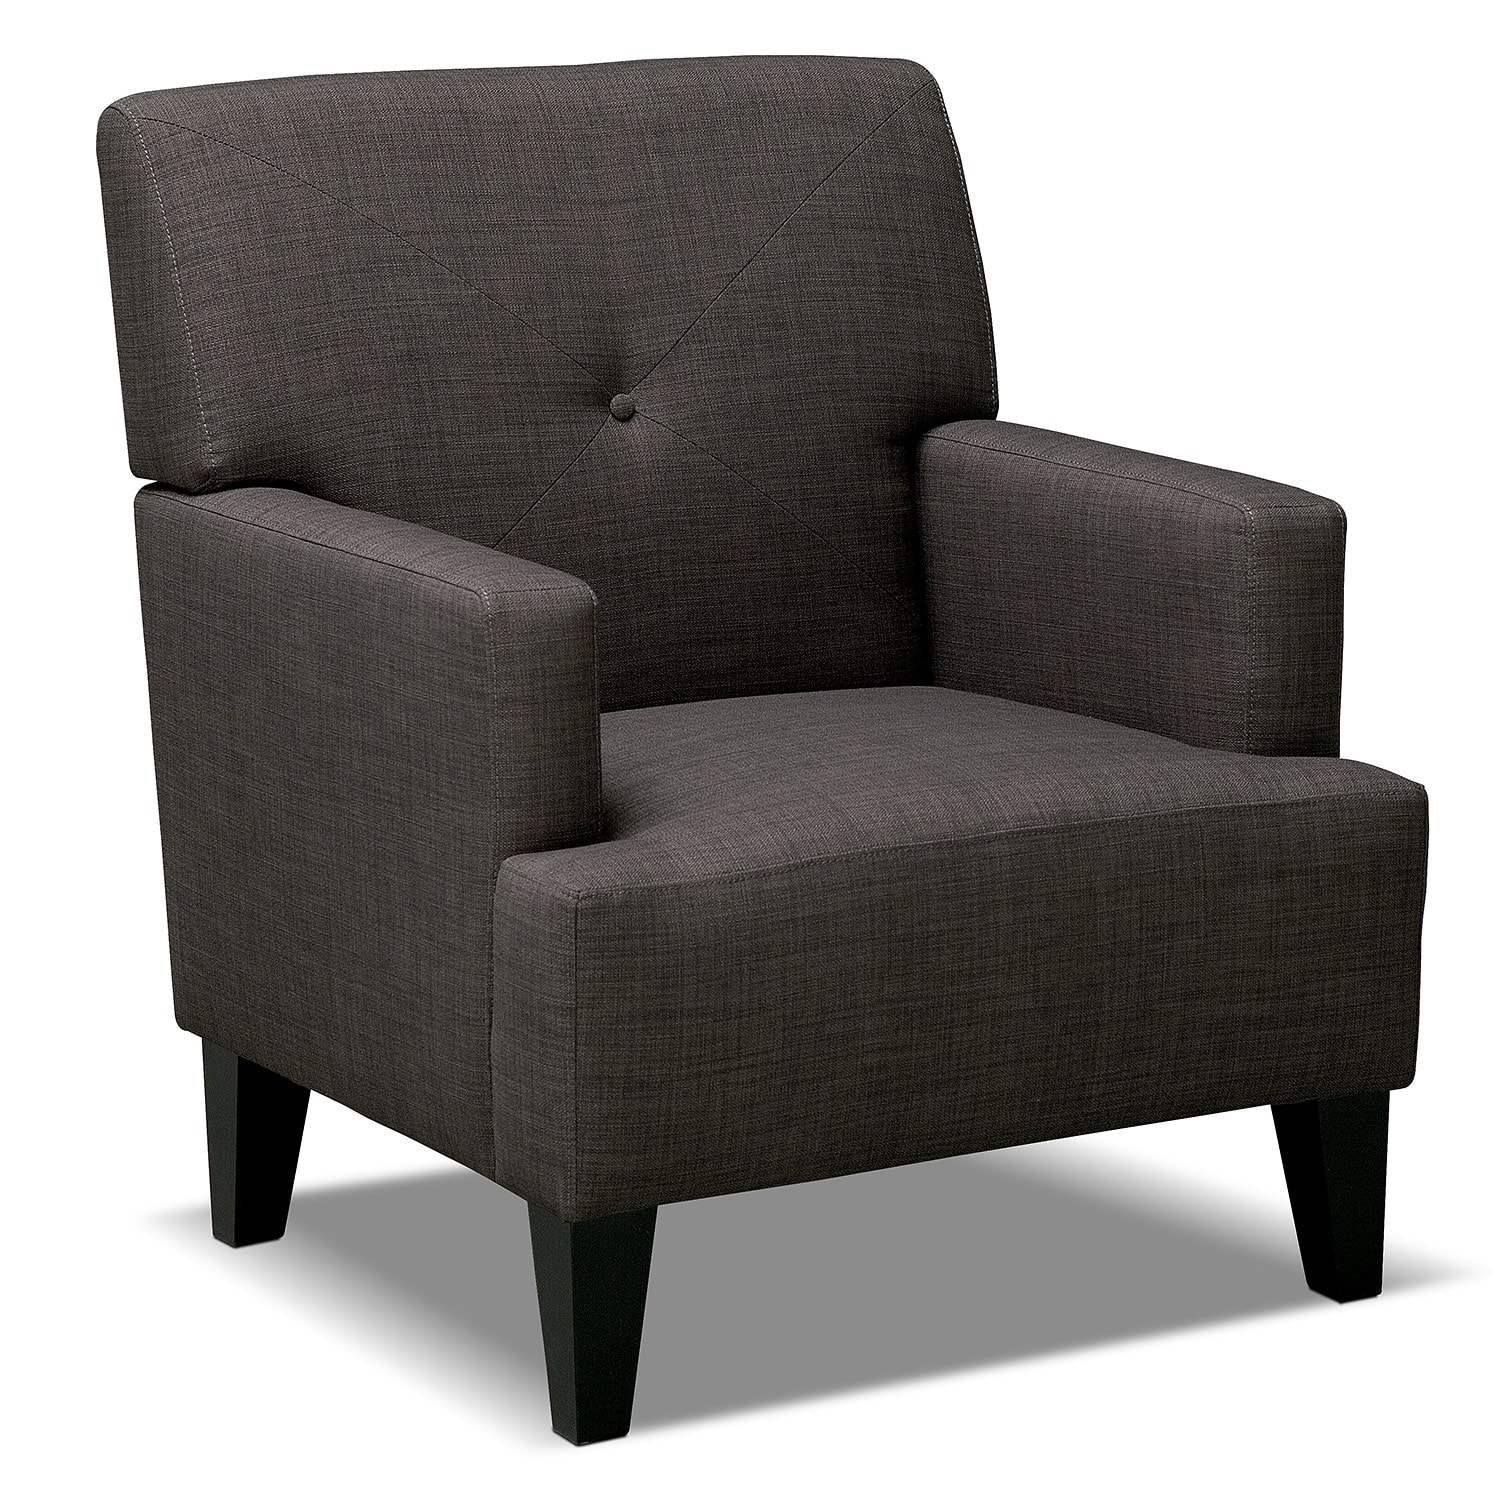 avalon accent chair charcoal value city furniture. Black Bedroom Furniture Sets. Home Design Ideas